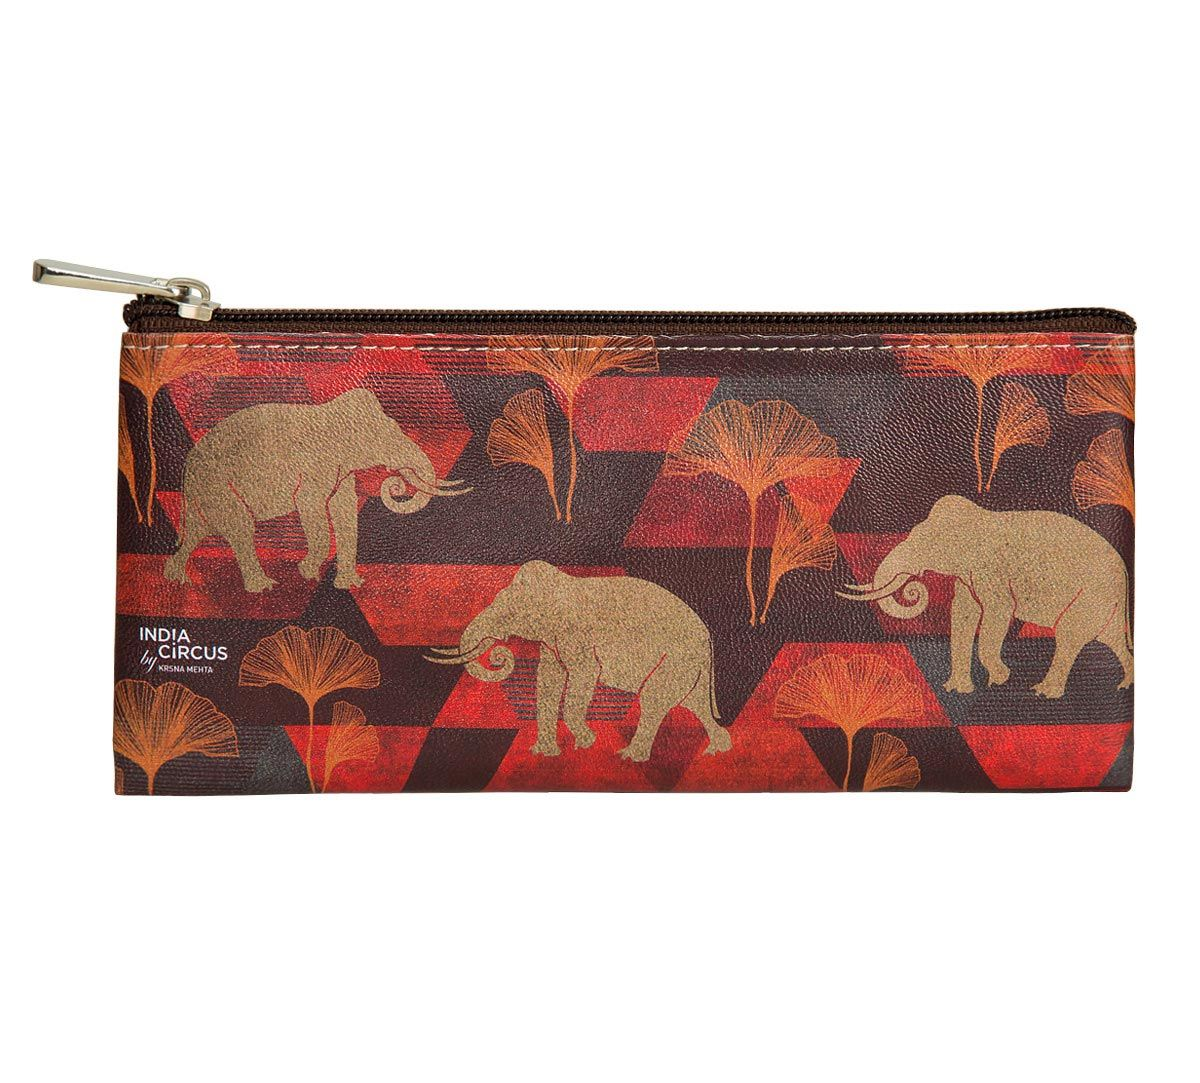 India Circus Gallant Tusker Small Utility Pouch